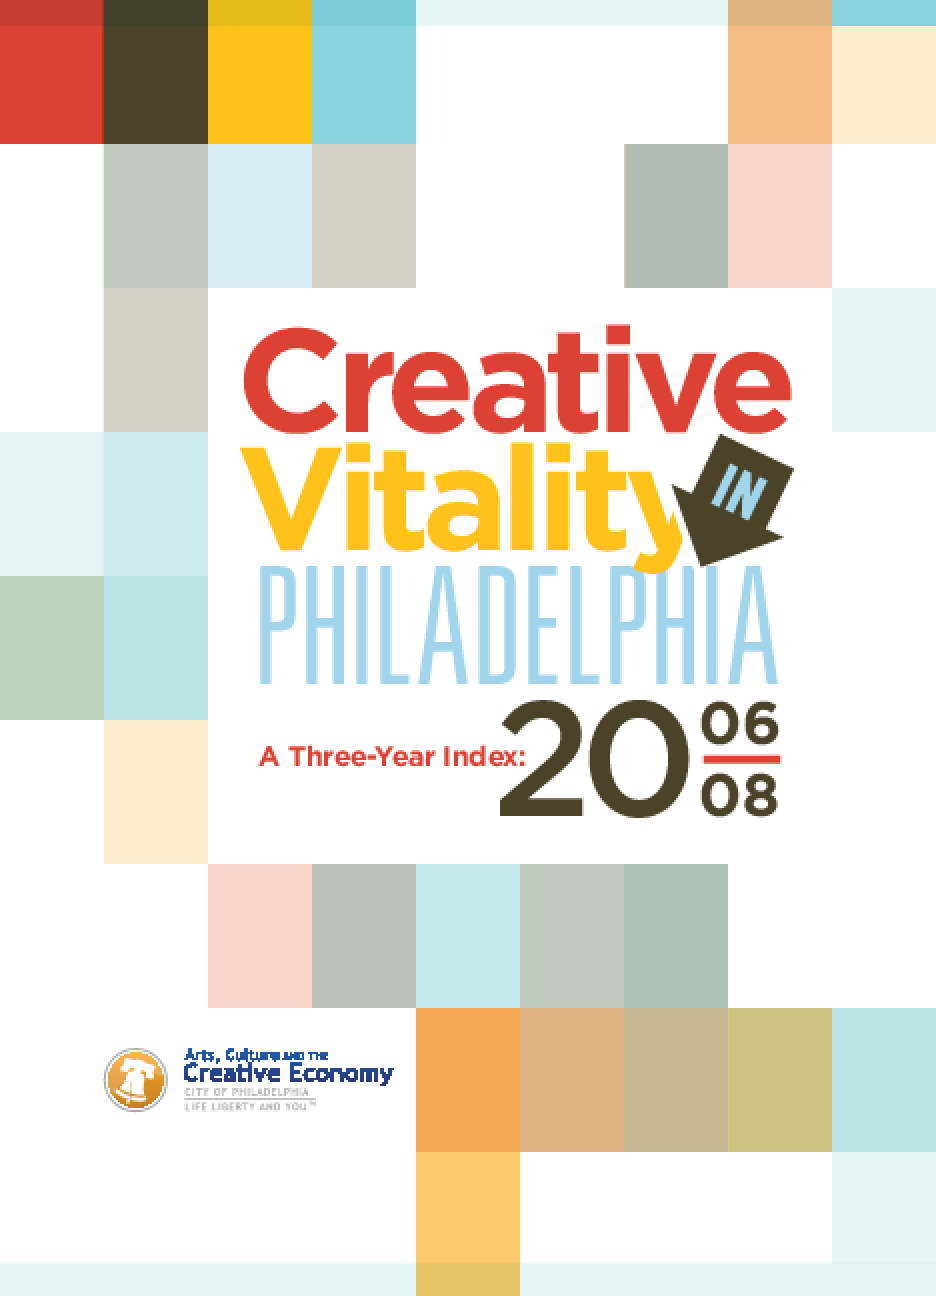 Creative Vitality in Philadelphia